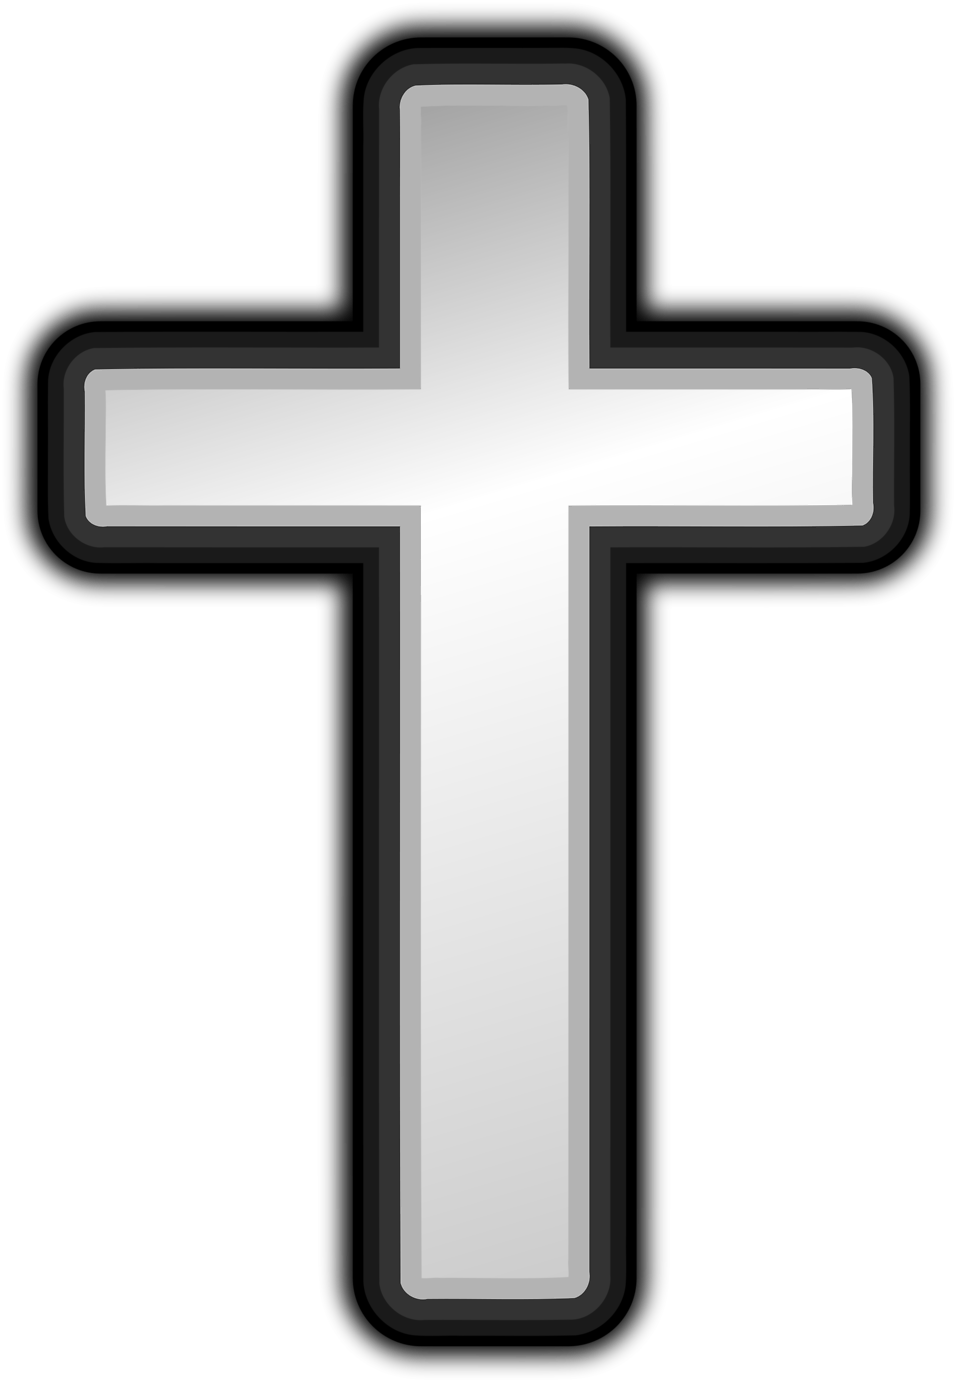 Cross of christ clipart freeuse library Cross | Free Stock Photo | Illustration of a white cross | # 16542 freeuse library